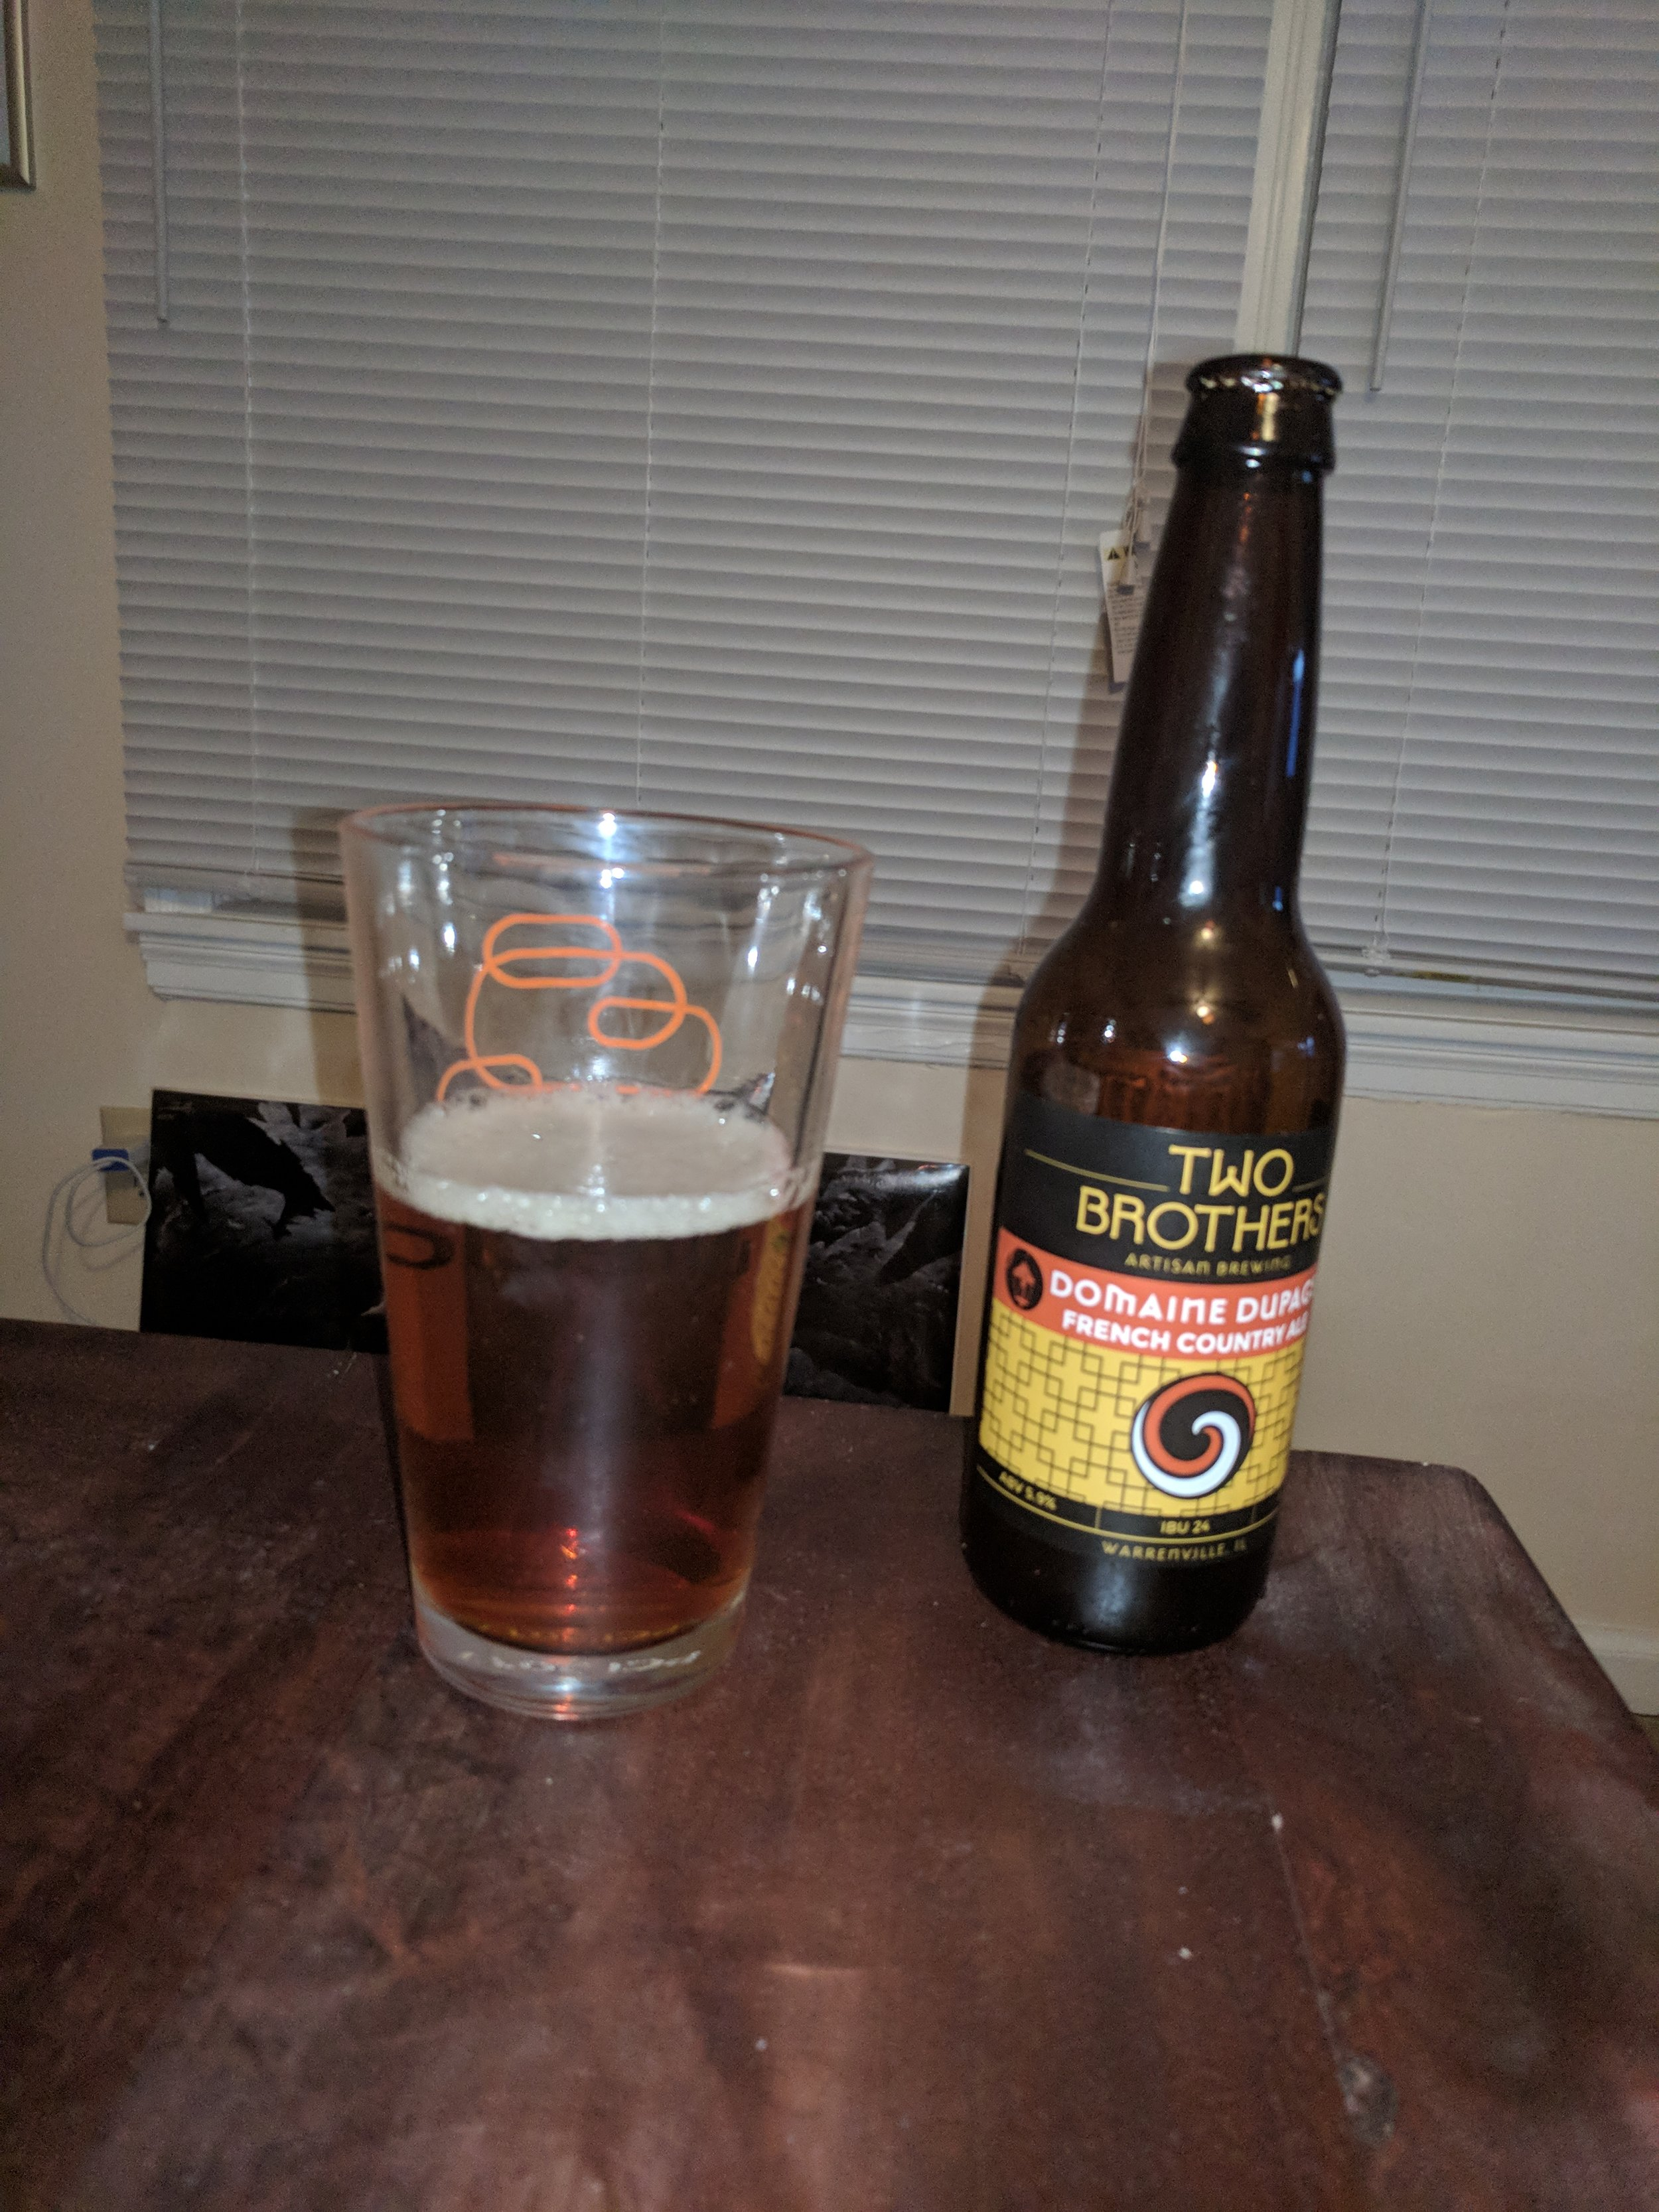 Domaine DuPage - Domaine DuPage from Two Brothers Artisan Brewing is a French Country Ale that we tasted on Episode 20. I am just going to say at the very beginning that this beer was quite mediocre. We did not have very much to say about it on the podcast because it is just a bit bland. The flavor is not very strong nor does it linger, and it mostly seems to come from the malt. There is a small bit of bite right on the end, but it is mild. It is an ale that is about as clean as a lager. None of us really enjoyed the beer, but I wanted to do something a bit different. If you are not into interesting/complex beers, this may be the beer for you.